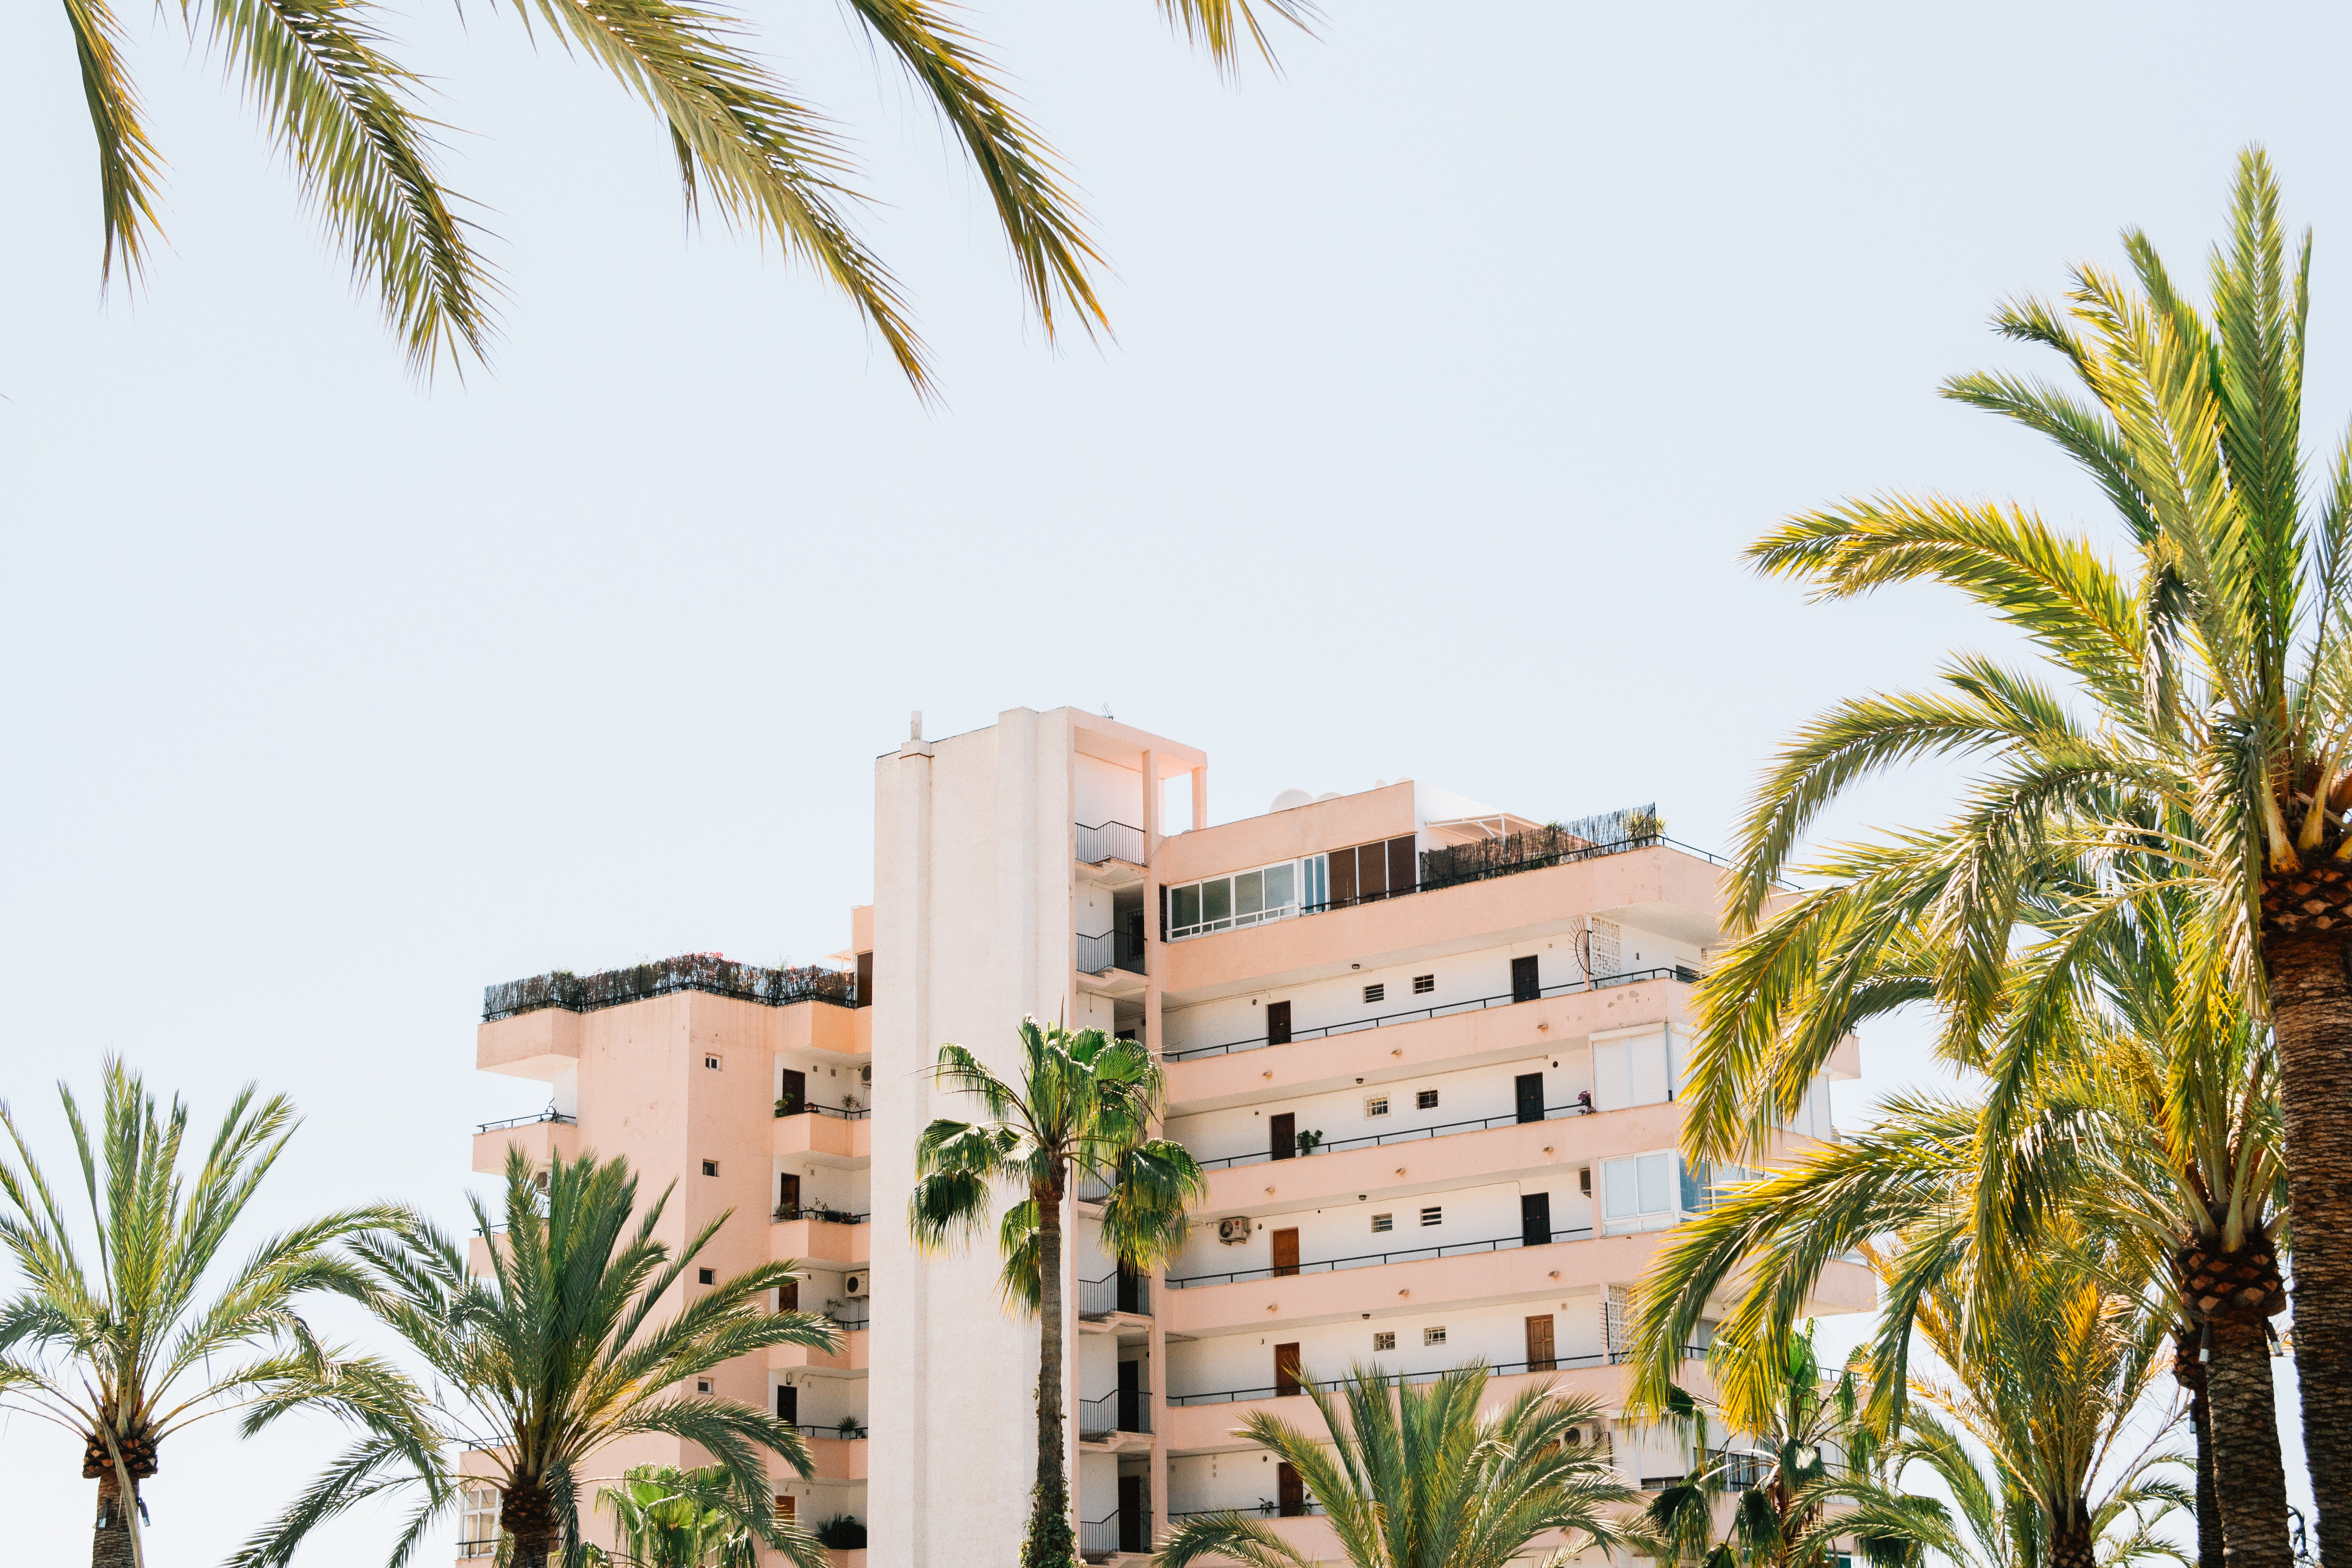 Long shot of apartment building and tower resort with palm trees in Palma